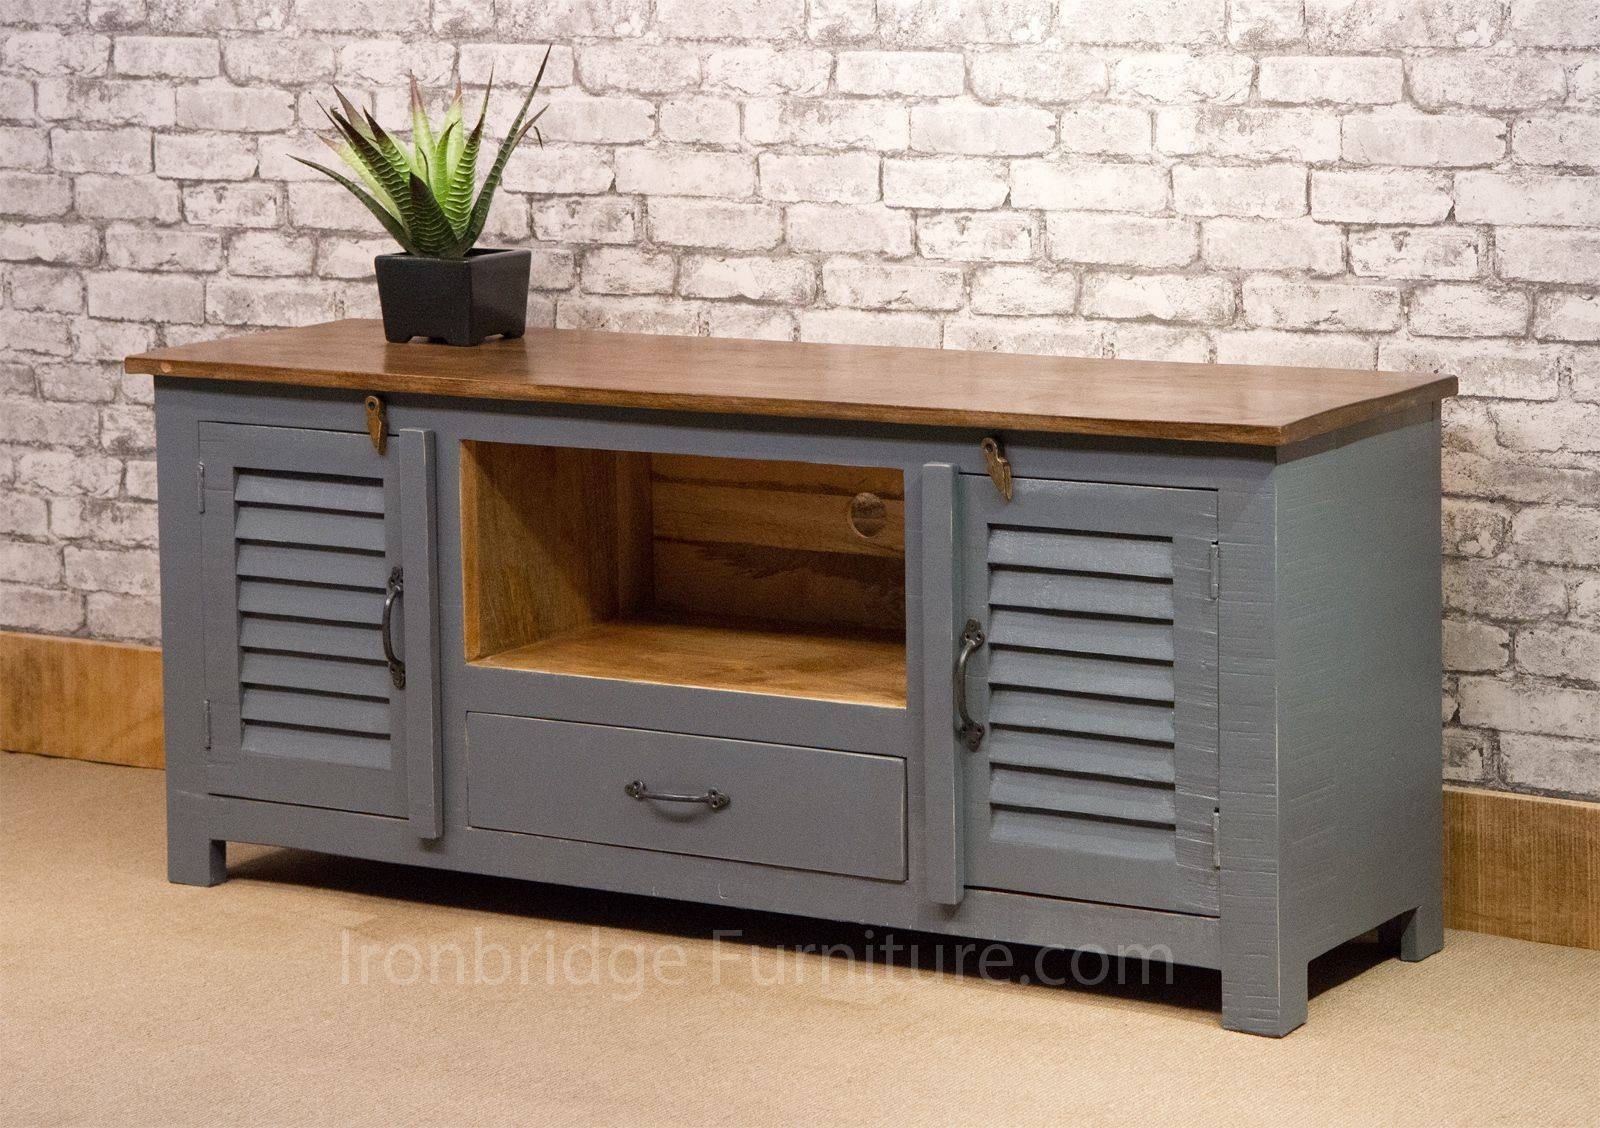 Si 518 Vintage Style Painted Long Tv Cabinet – Dusky Grey With Vintage Style Tv Cabinets (View 15 of 15)